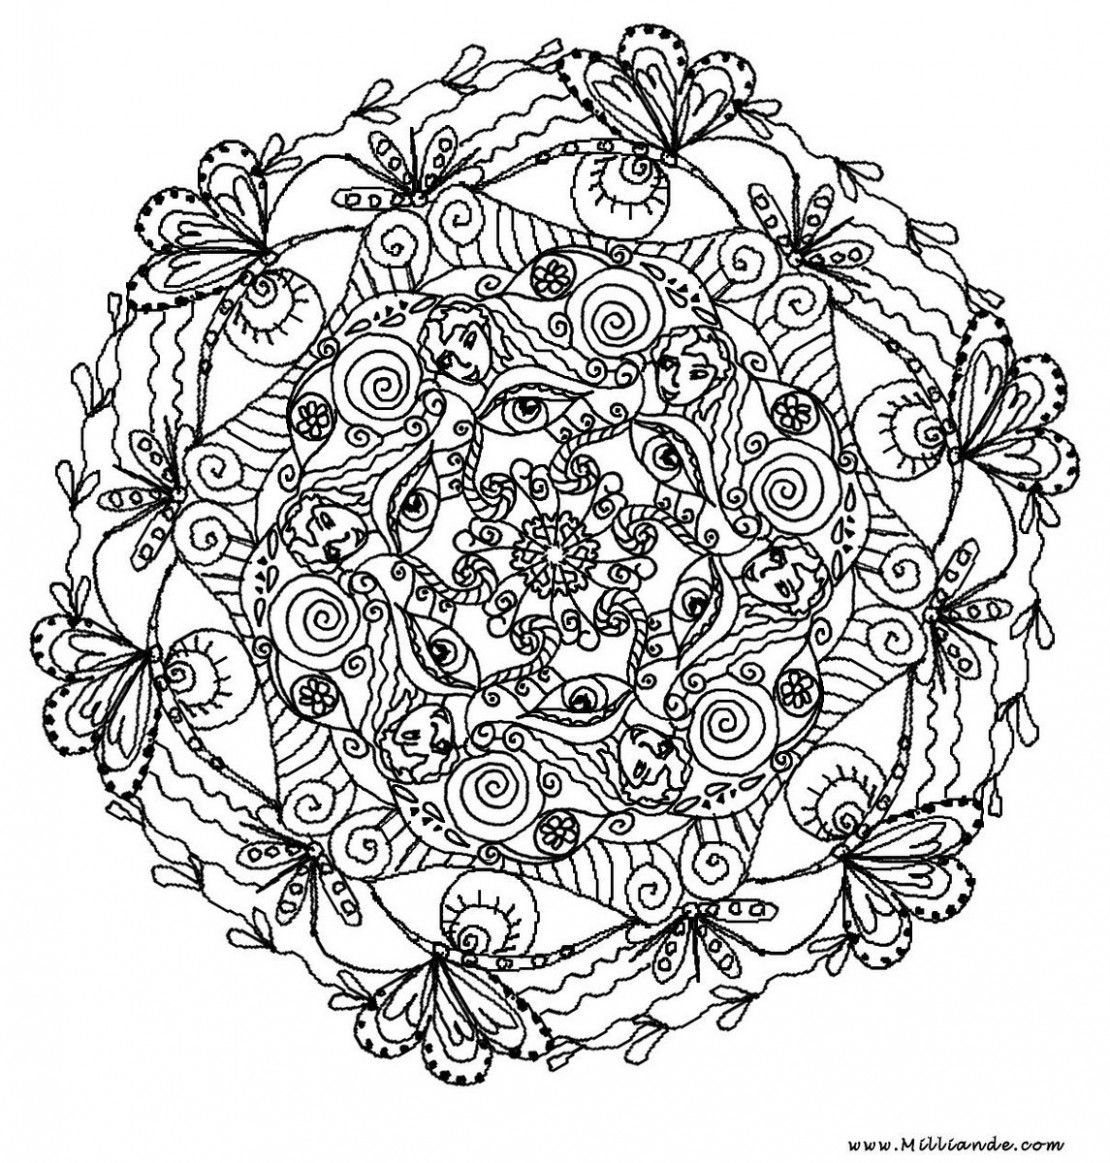 Colouring book online for adults - Coloring Pages For Adults Free Large Images